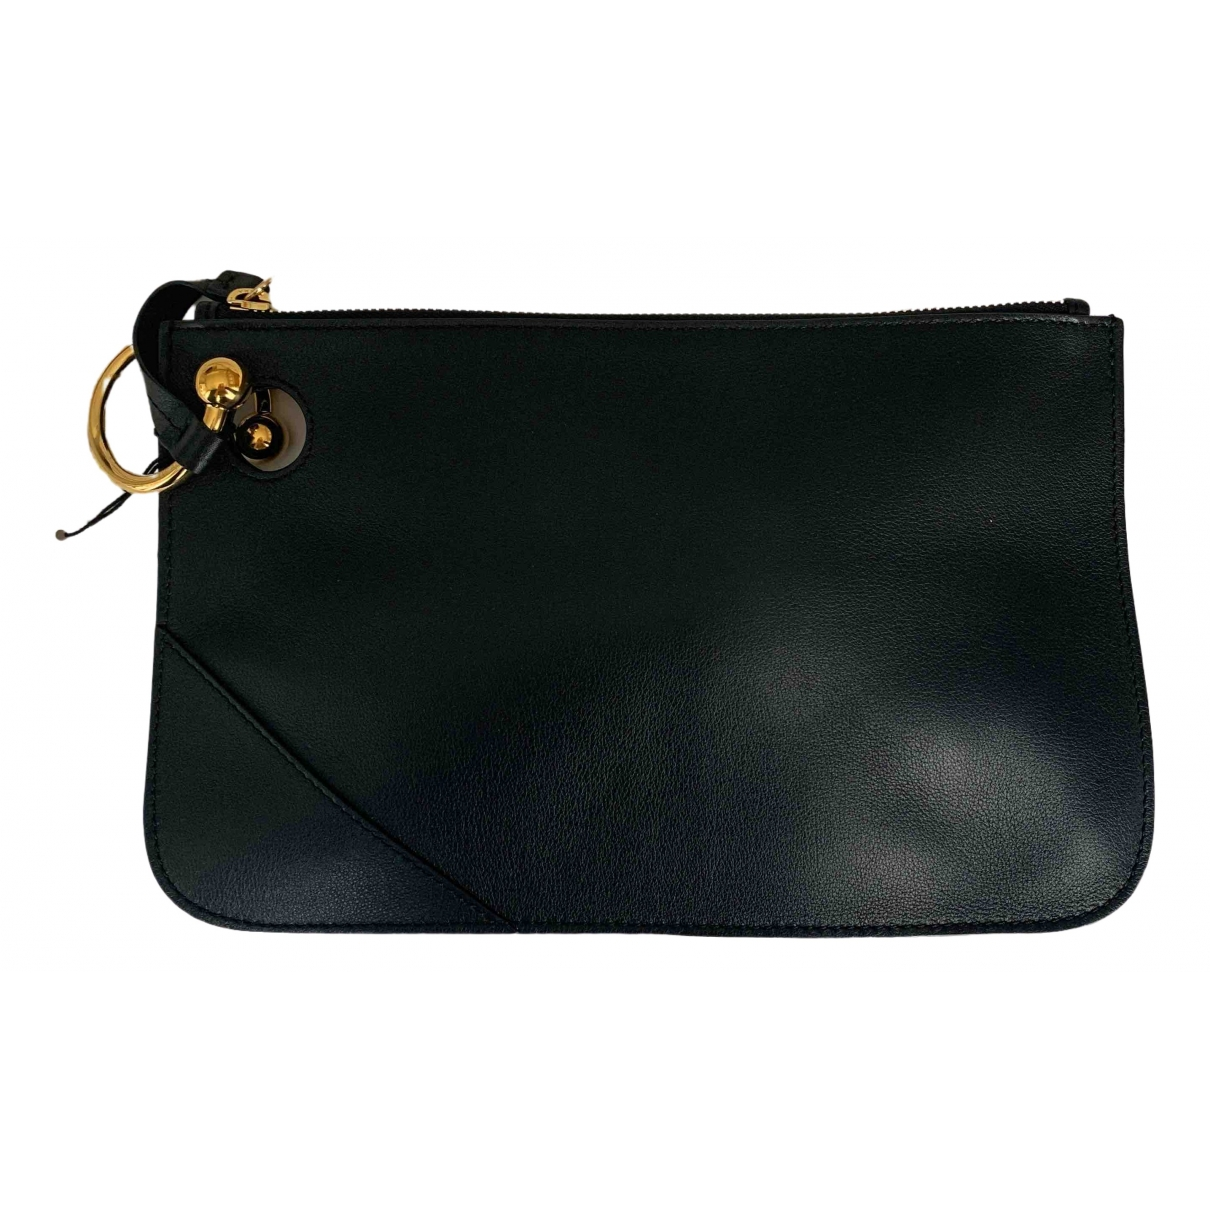 J.w. Anderson \N Black Leather Clutch bag for Women \N